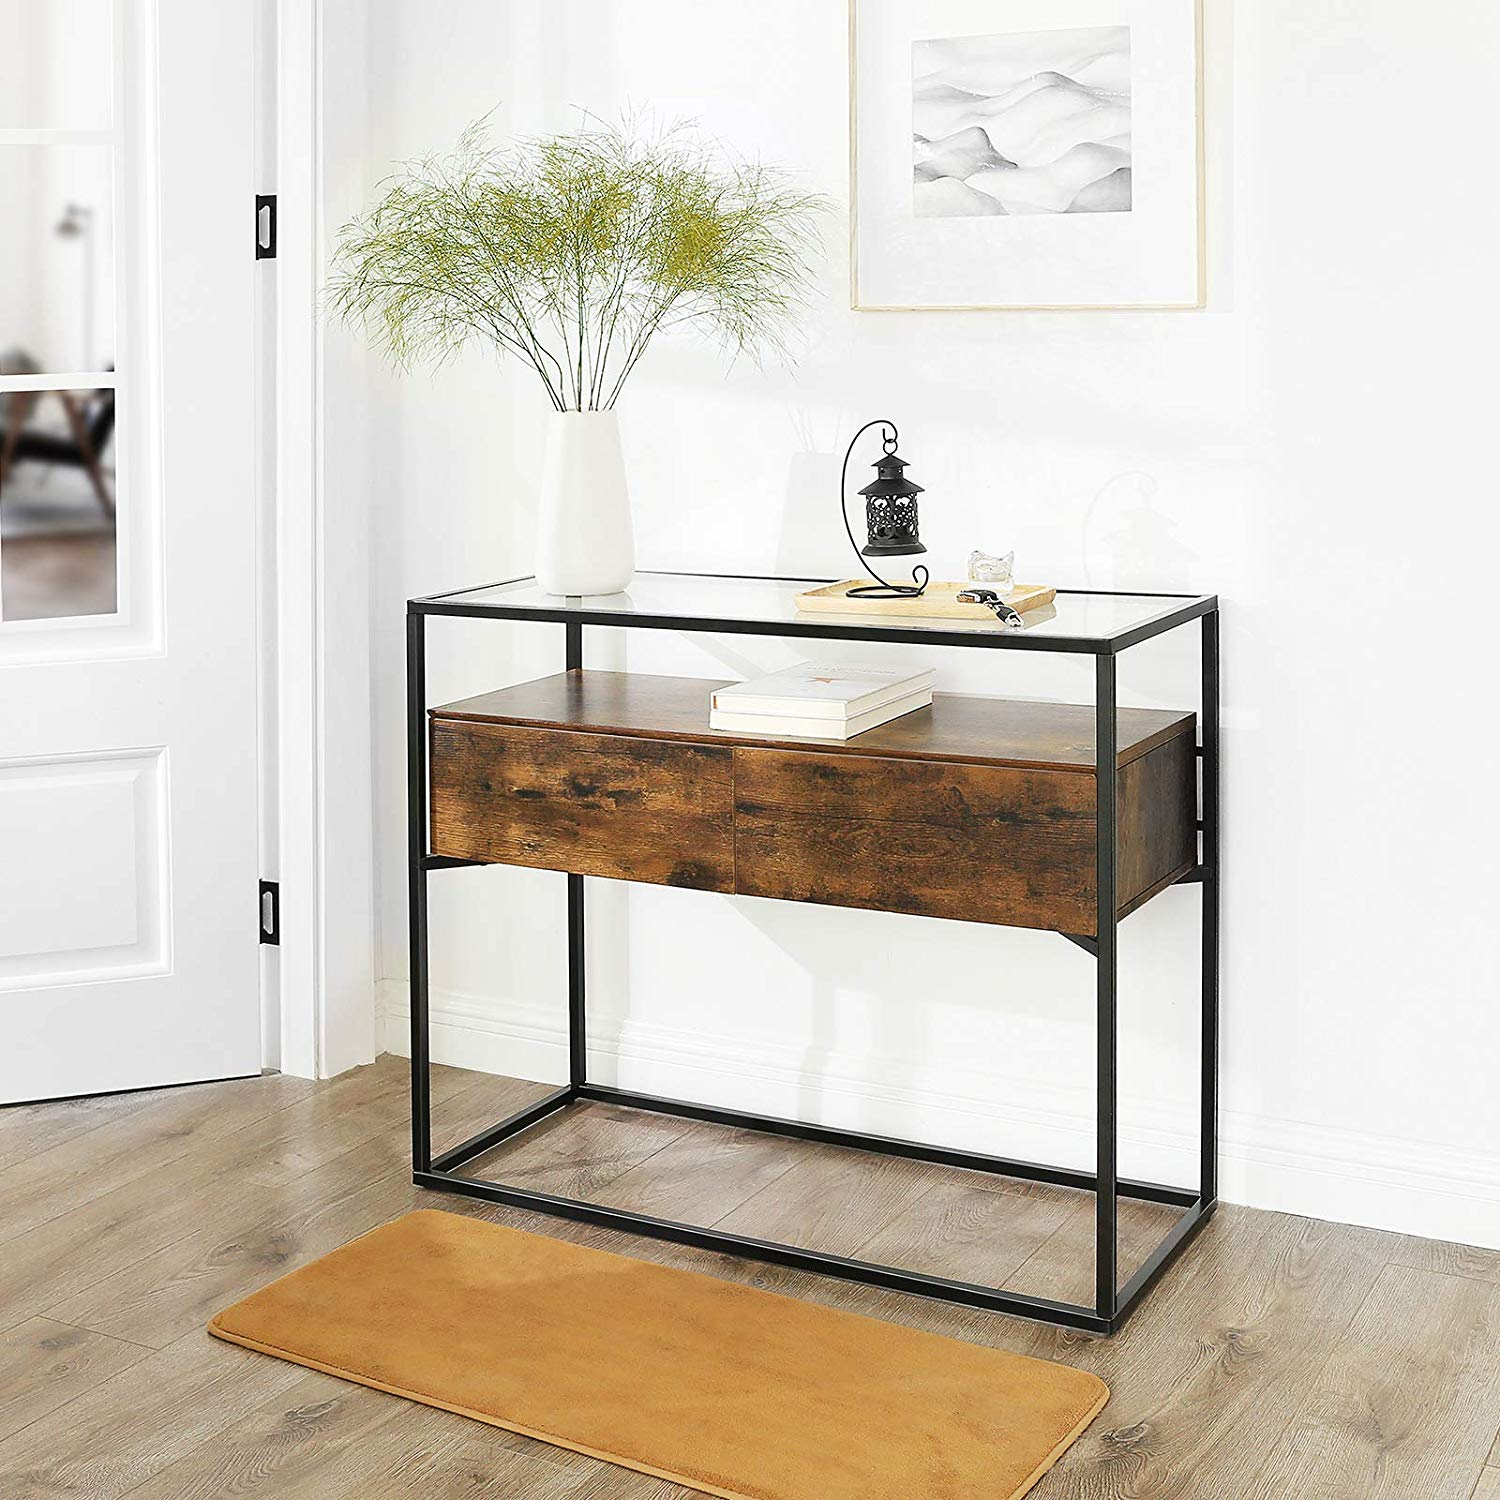 industrial-console-table-with-weathered-wood-drawers-and-tempered-glass-top